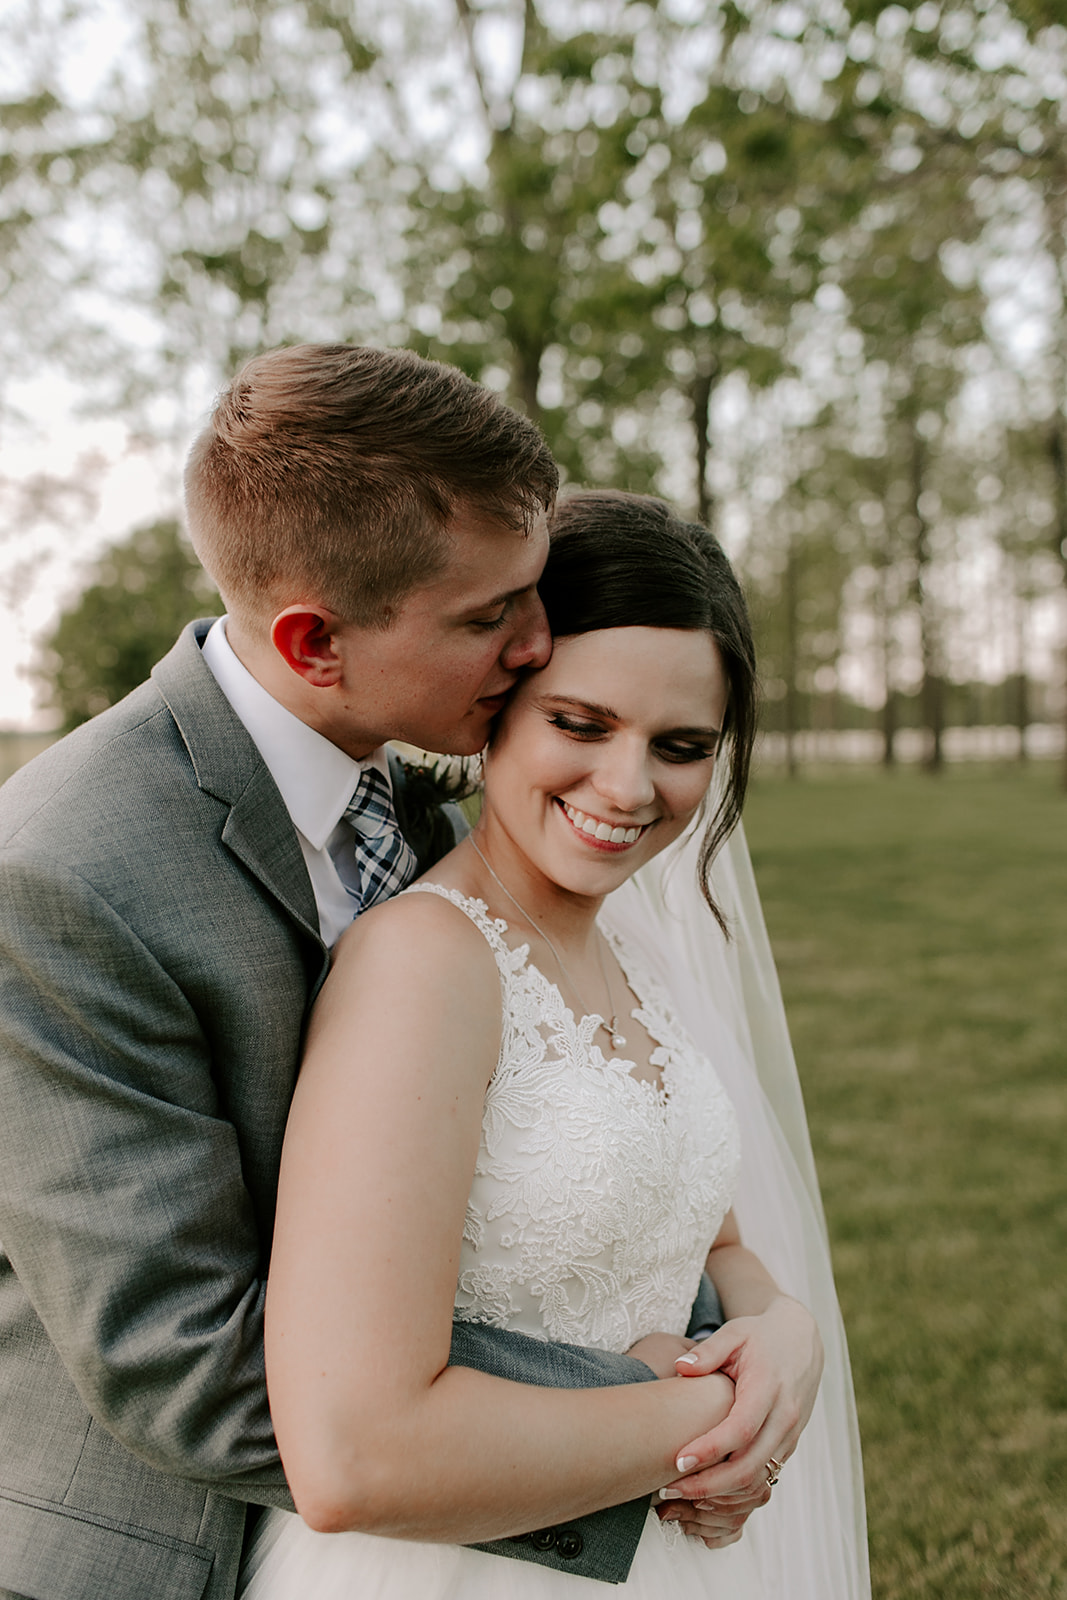 Kendra_and_Mattew_Indiana_Wedding_by_Emily_Wehner-888.jpg